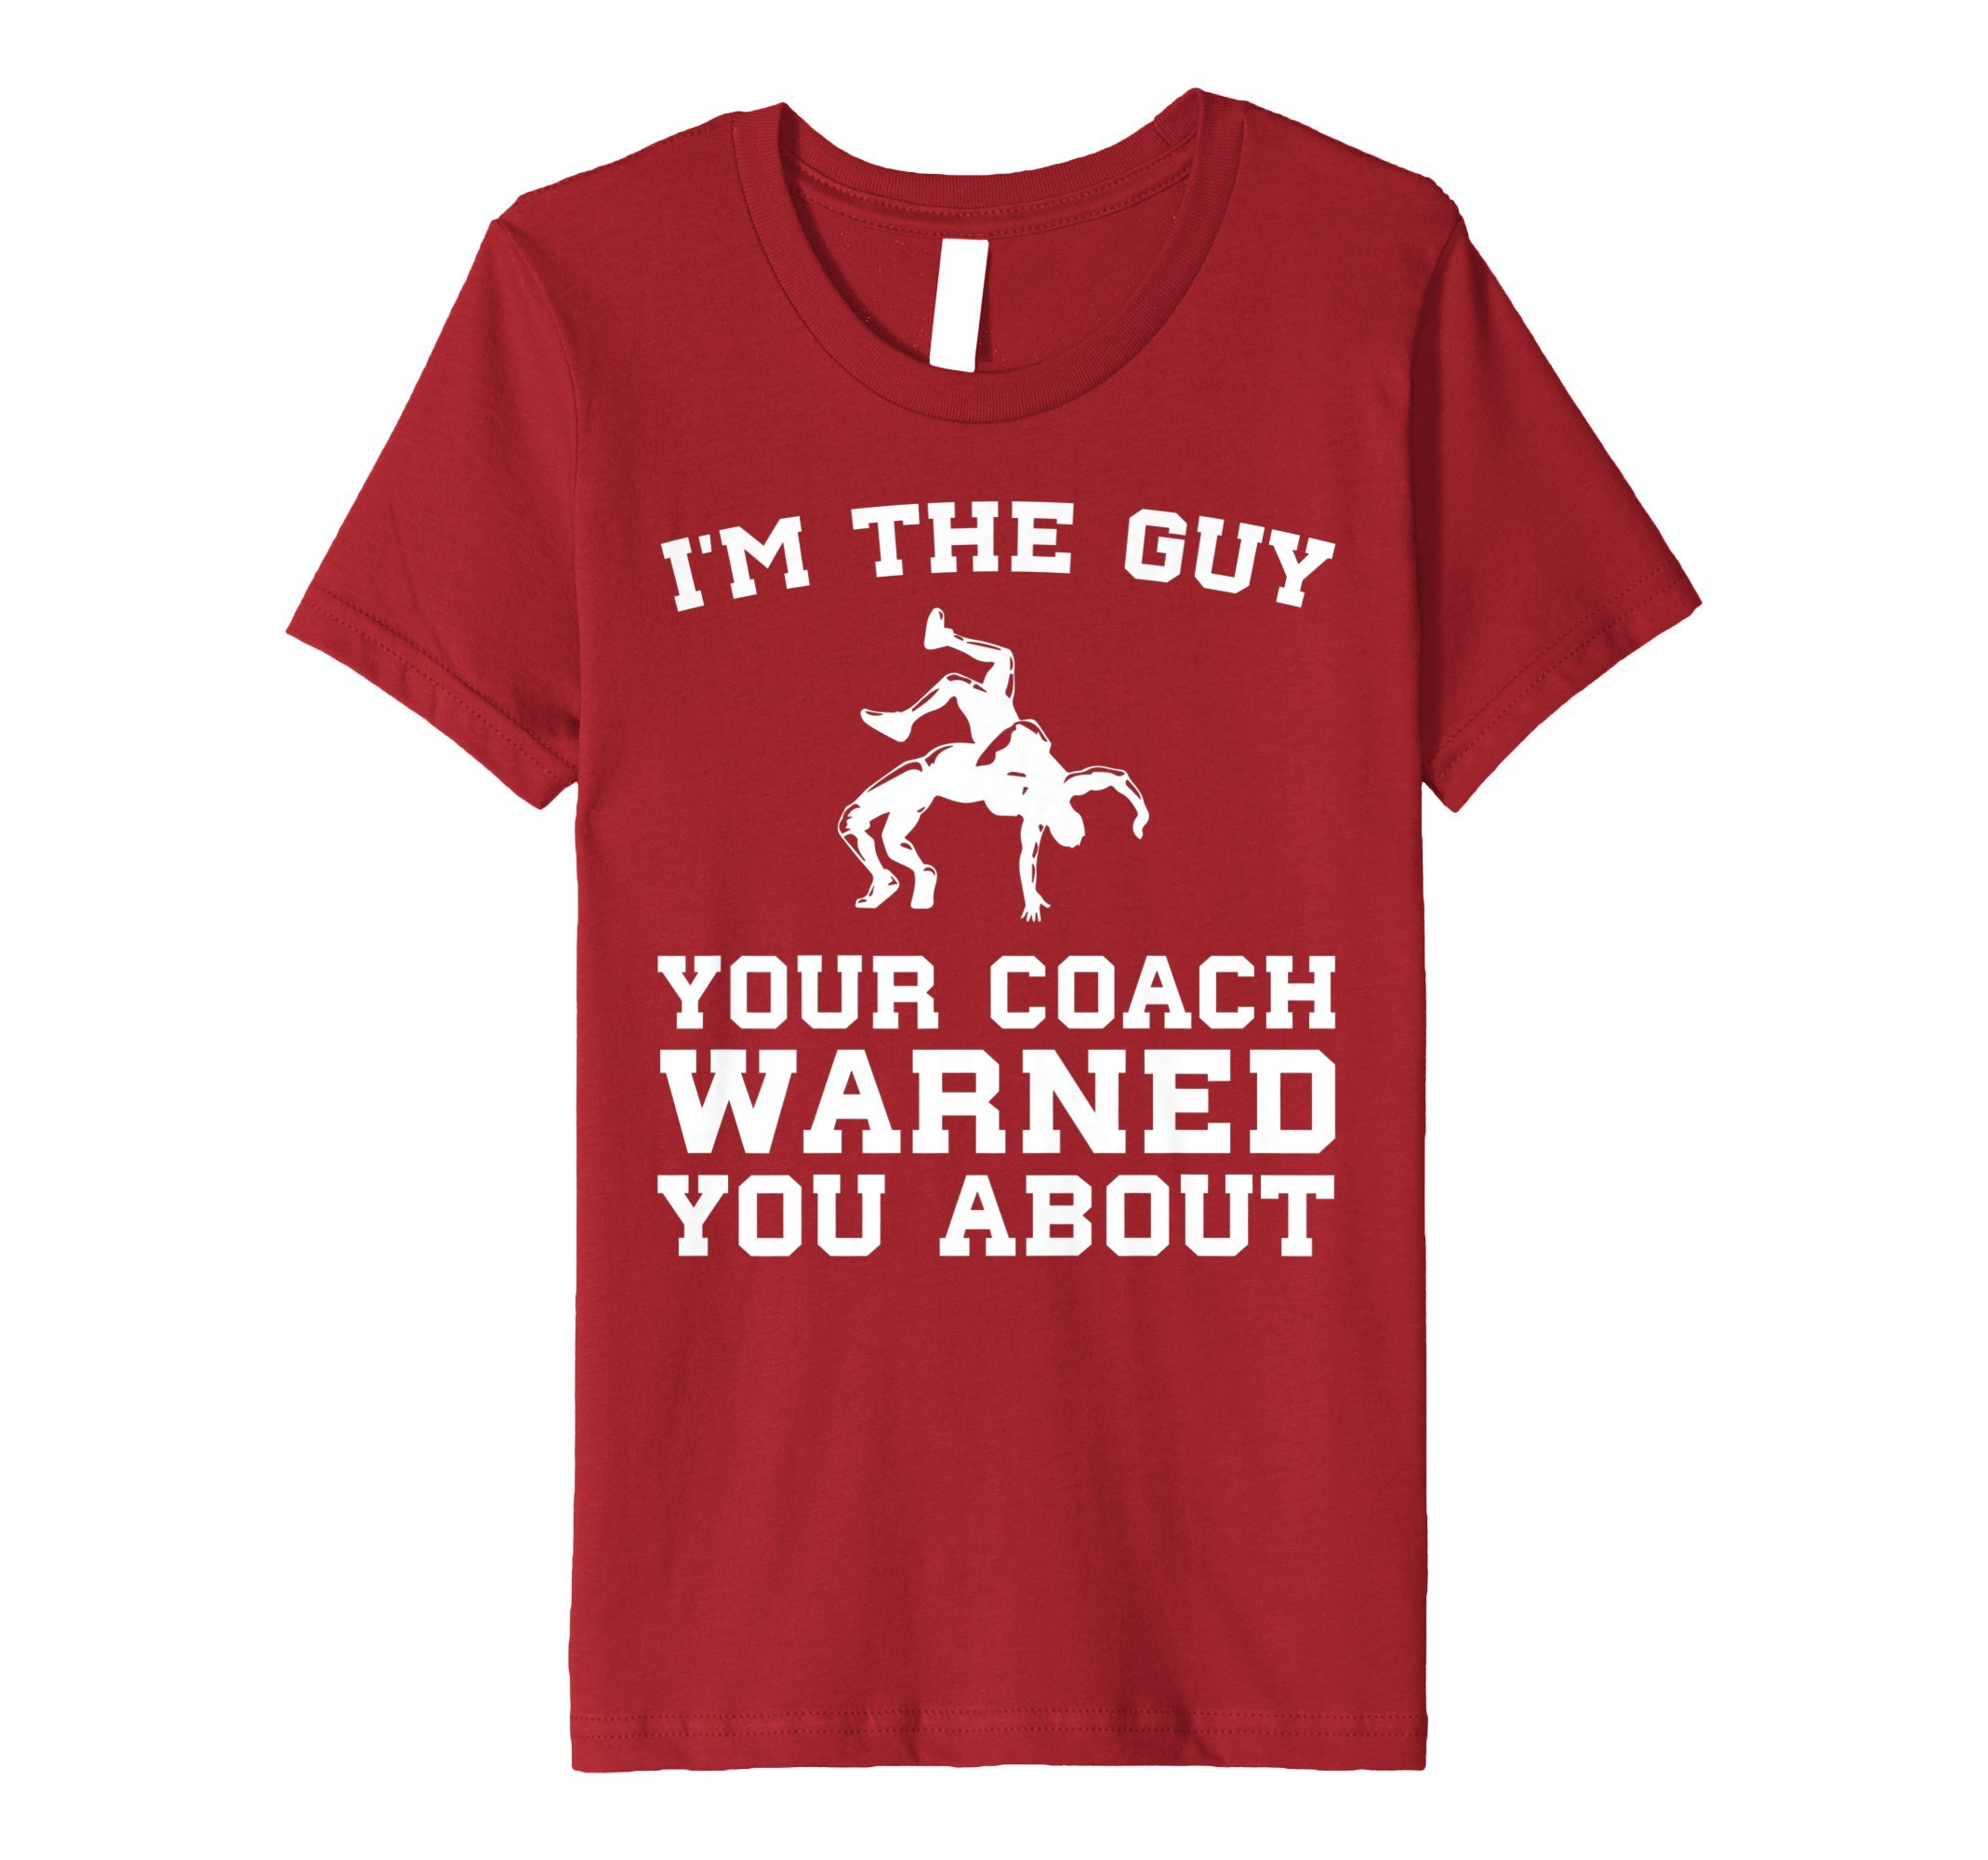 Kids The Guy Your Coach Warned You About Boy's Wrestling T Shirt 12 Cranberry by Funny Youth Sports Wrestling Shirts